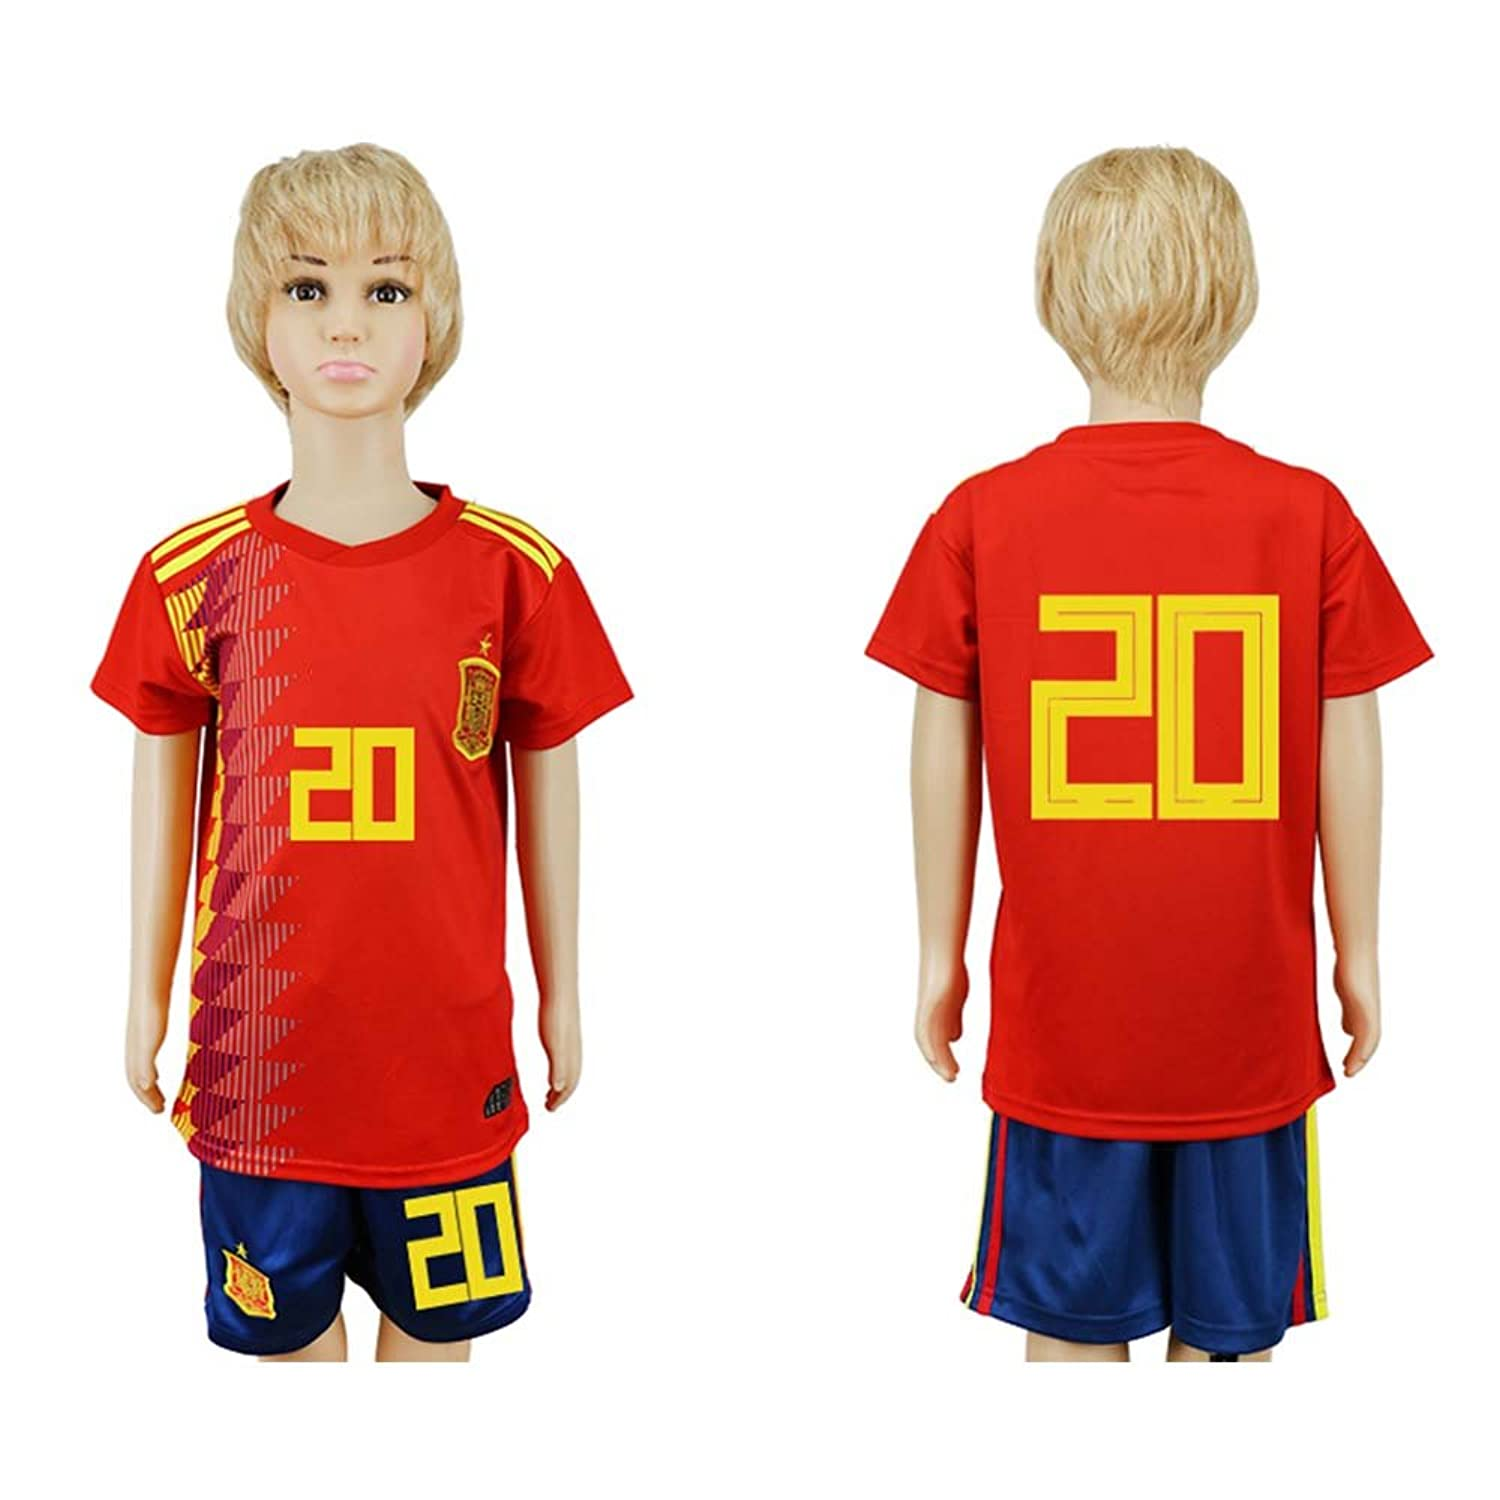 Puizozi SHIRT ボーイズ B07D3LV65422# (7 to 8 Years Old)